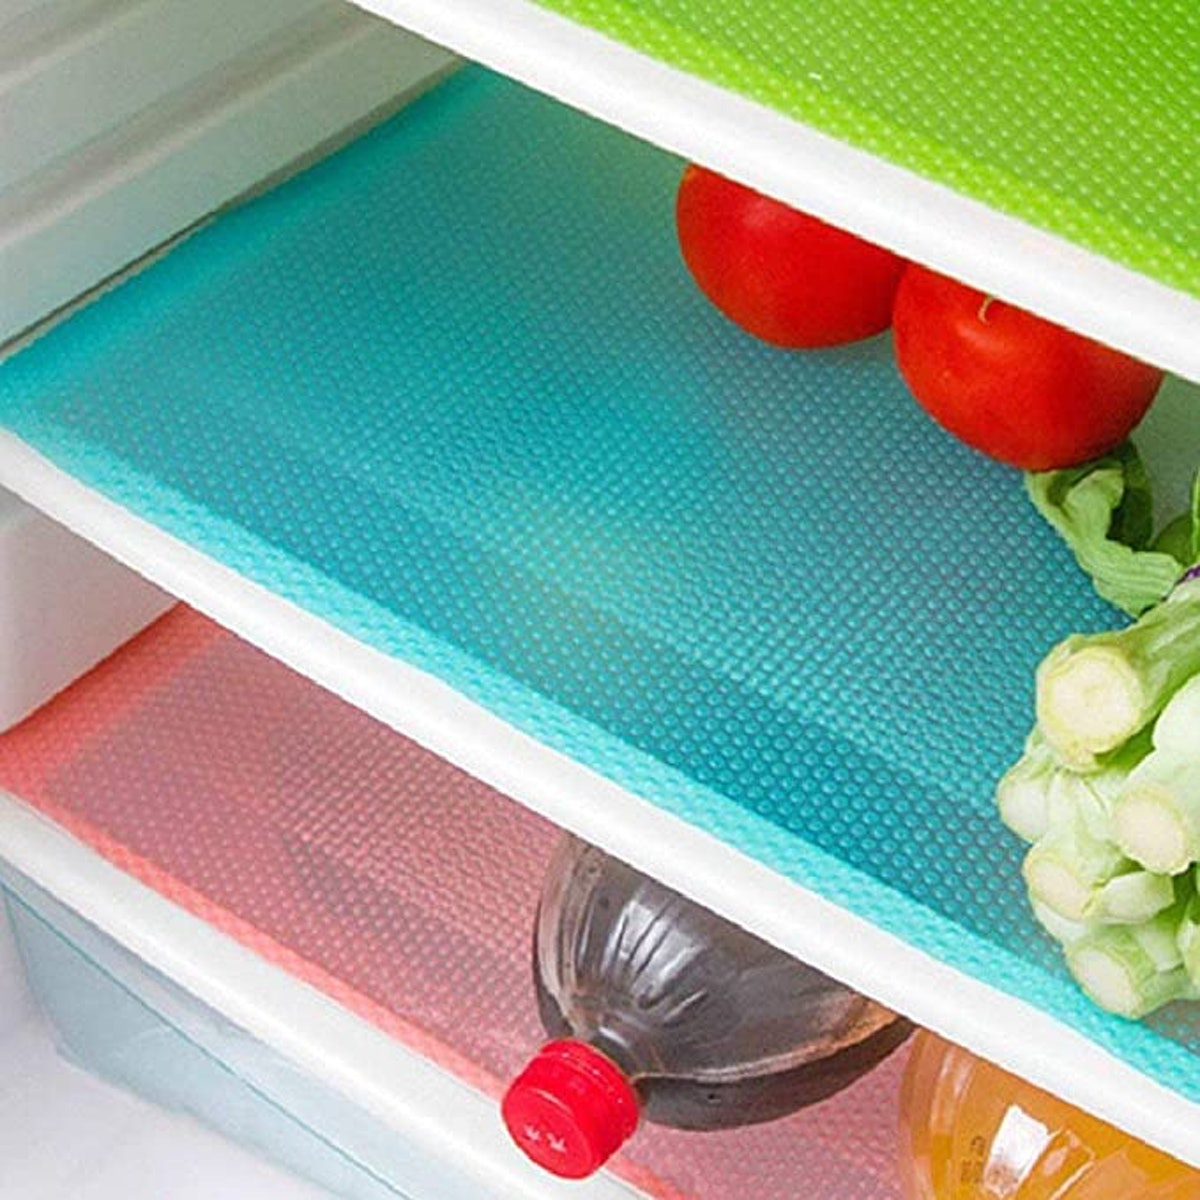 AKINLY Washable Fridge Mats (9-Pack)